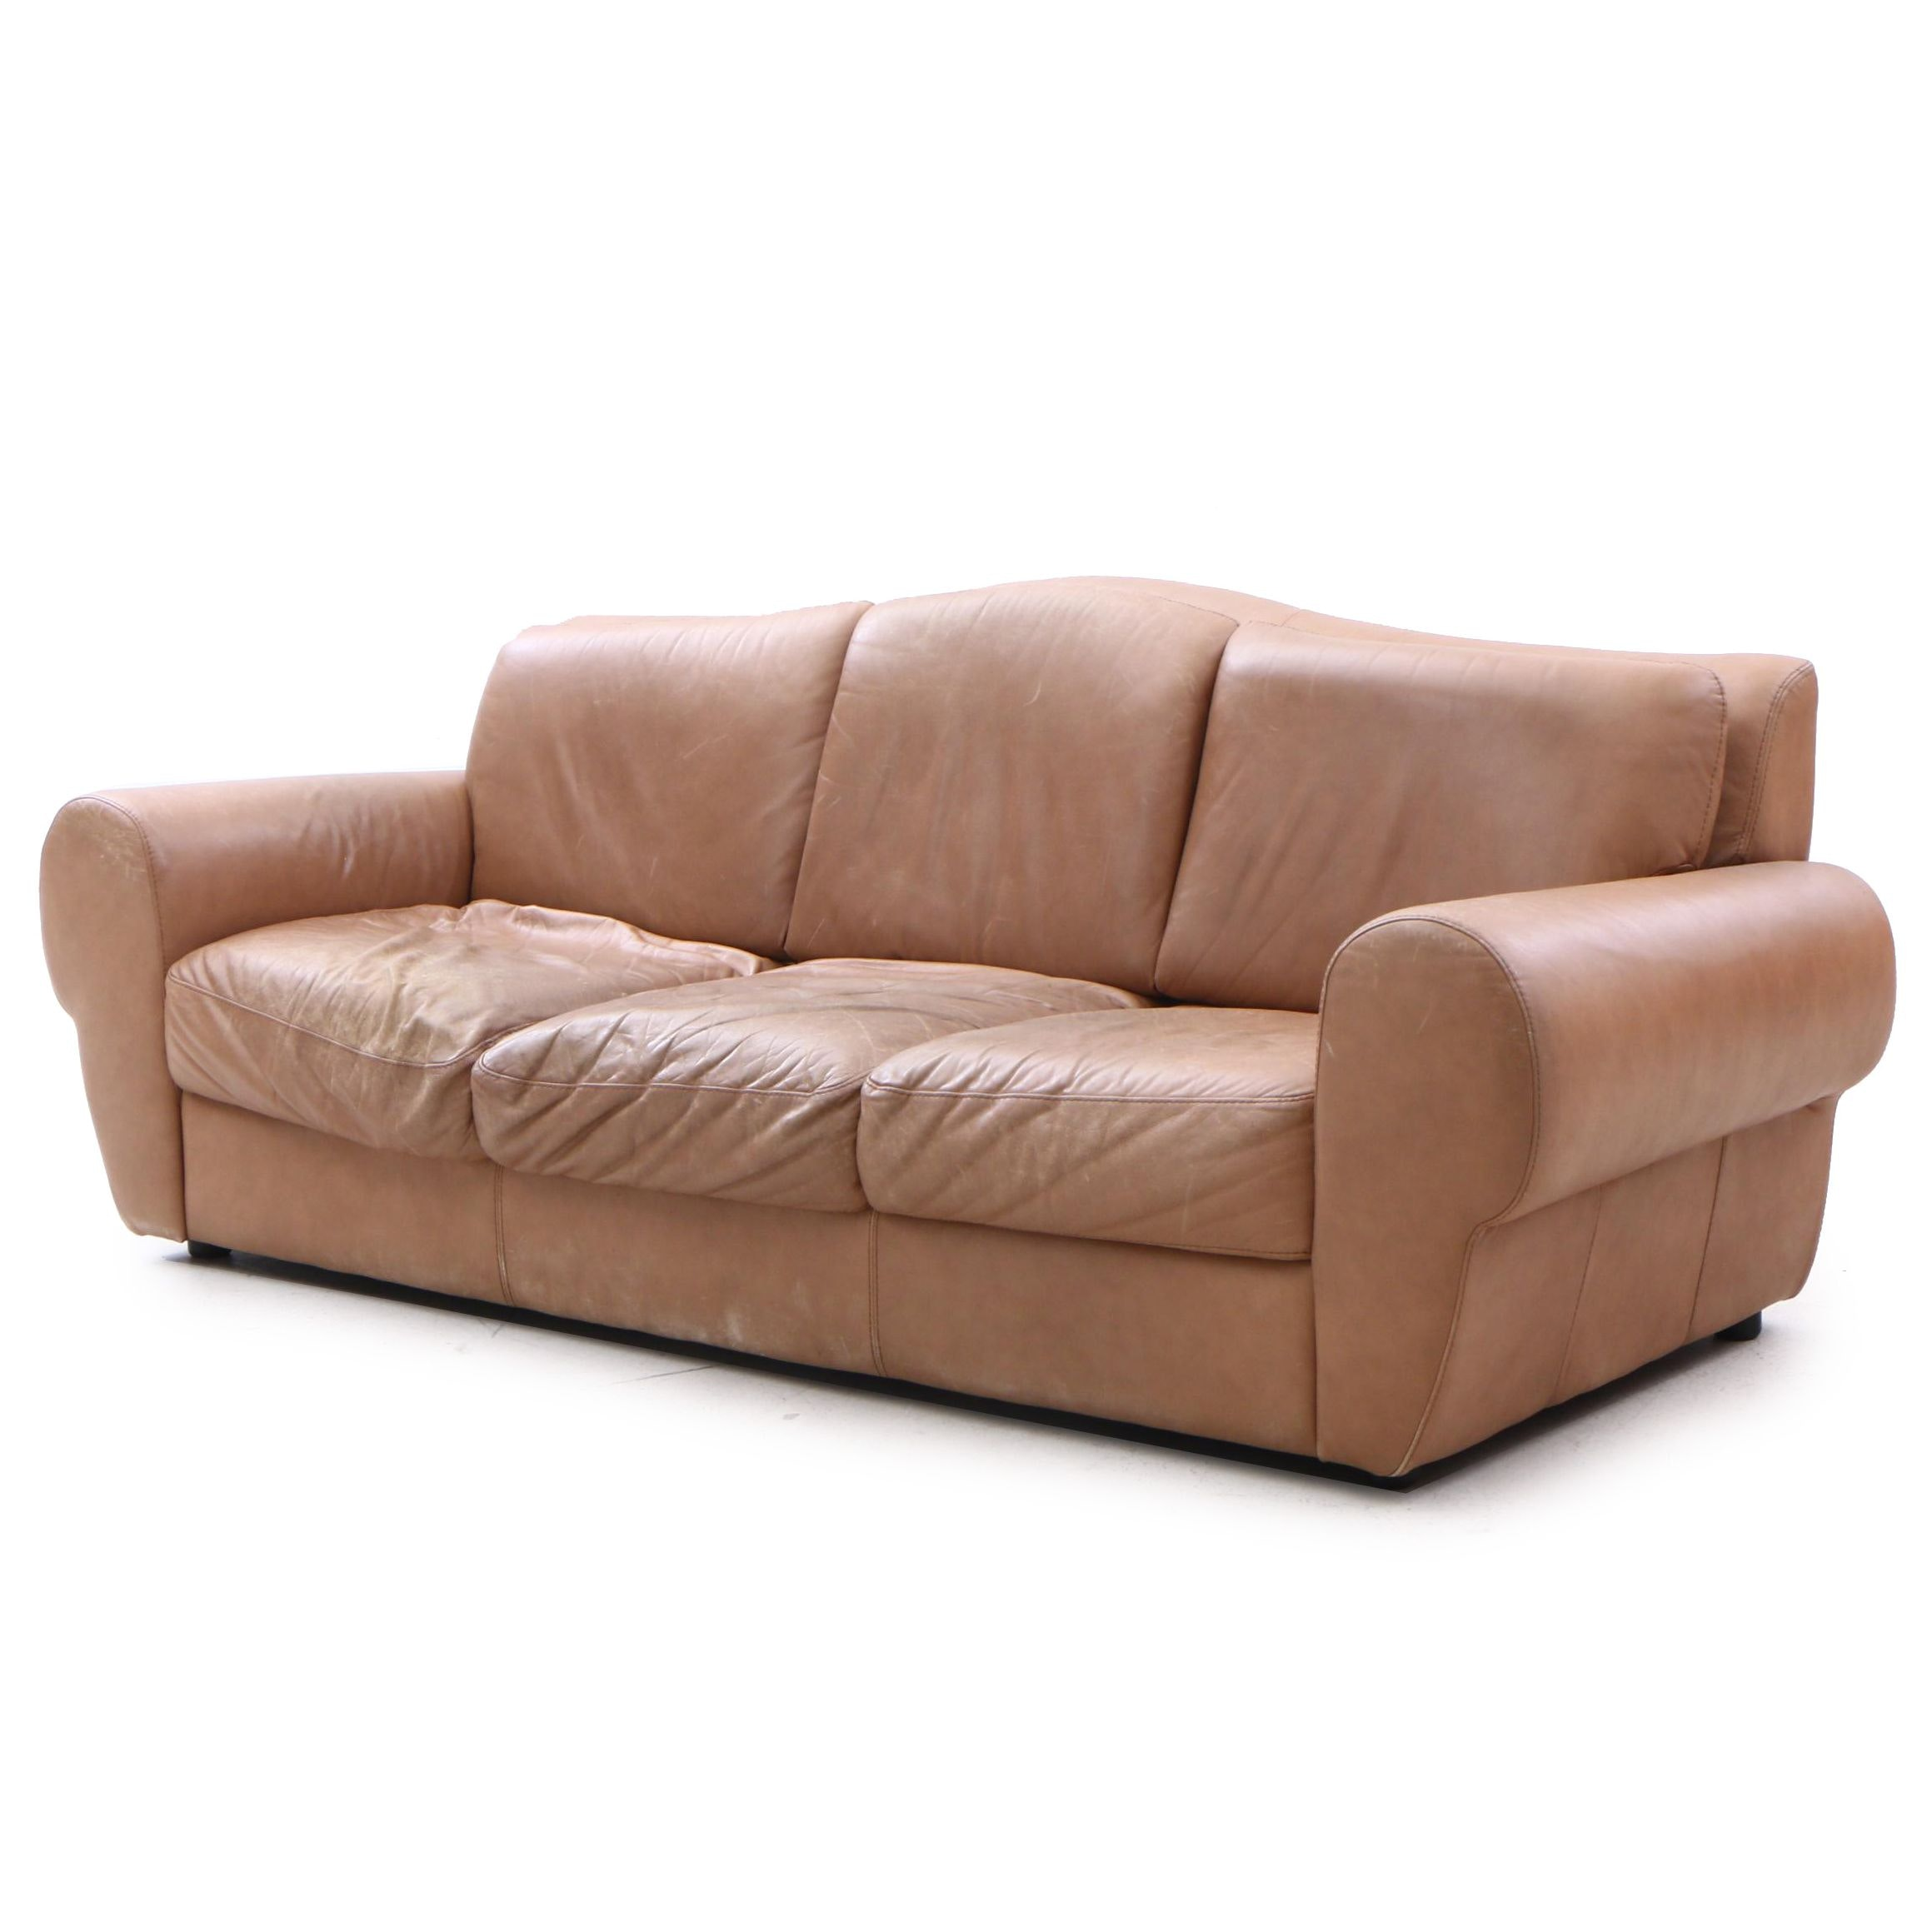 Leather Sofa by Italdesign, Late 20th Century